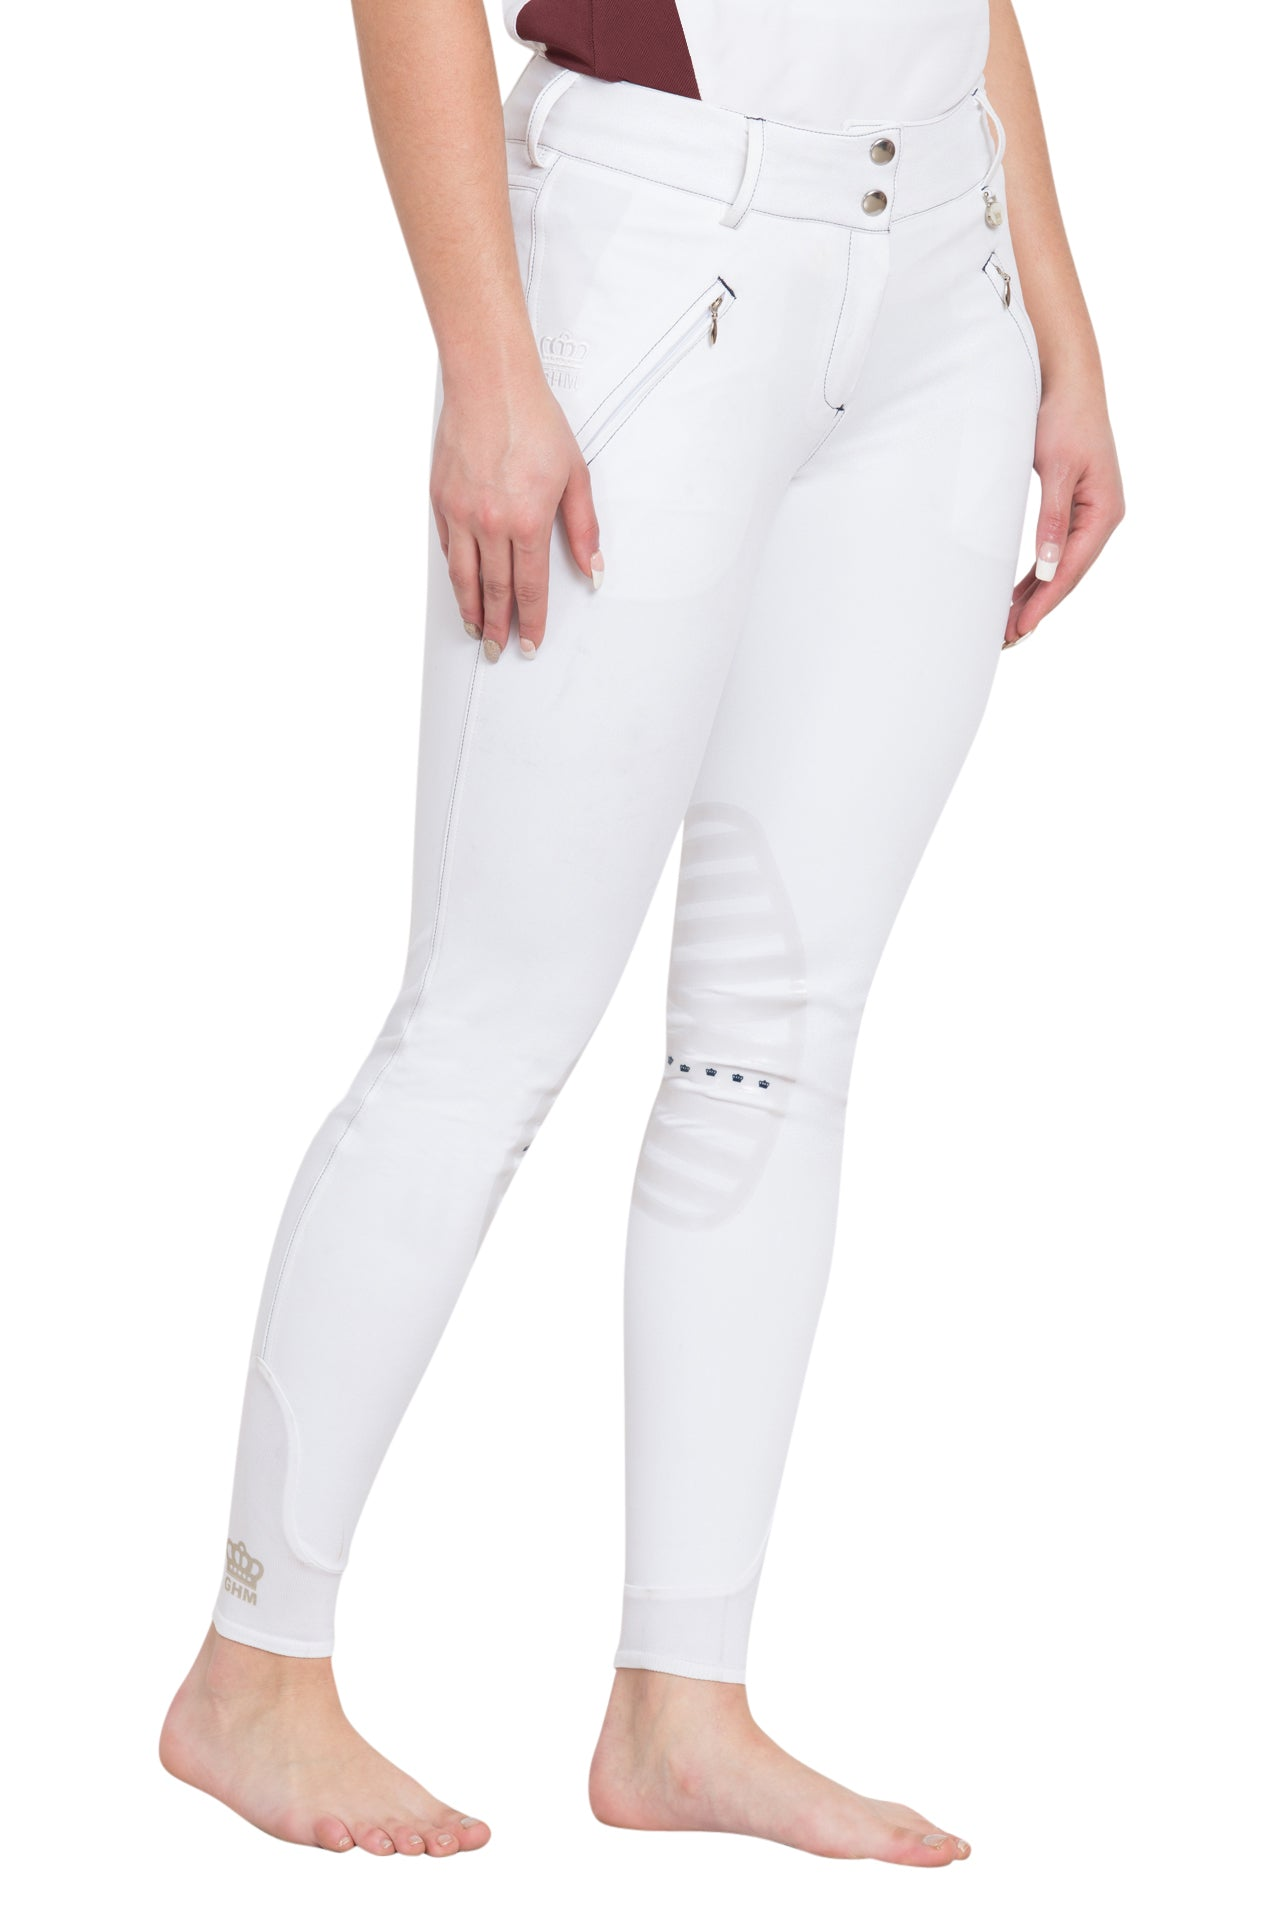 George H Morris Ladies Derby Silicone Knee Patch Breeches